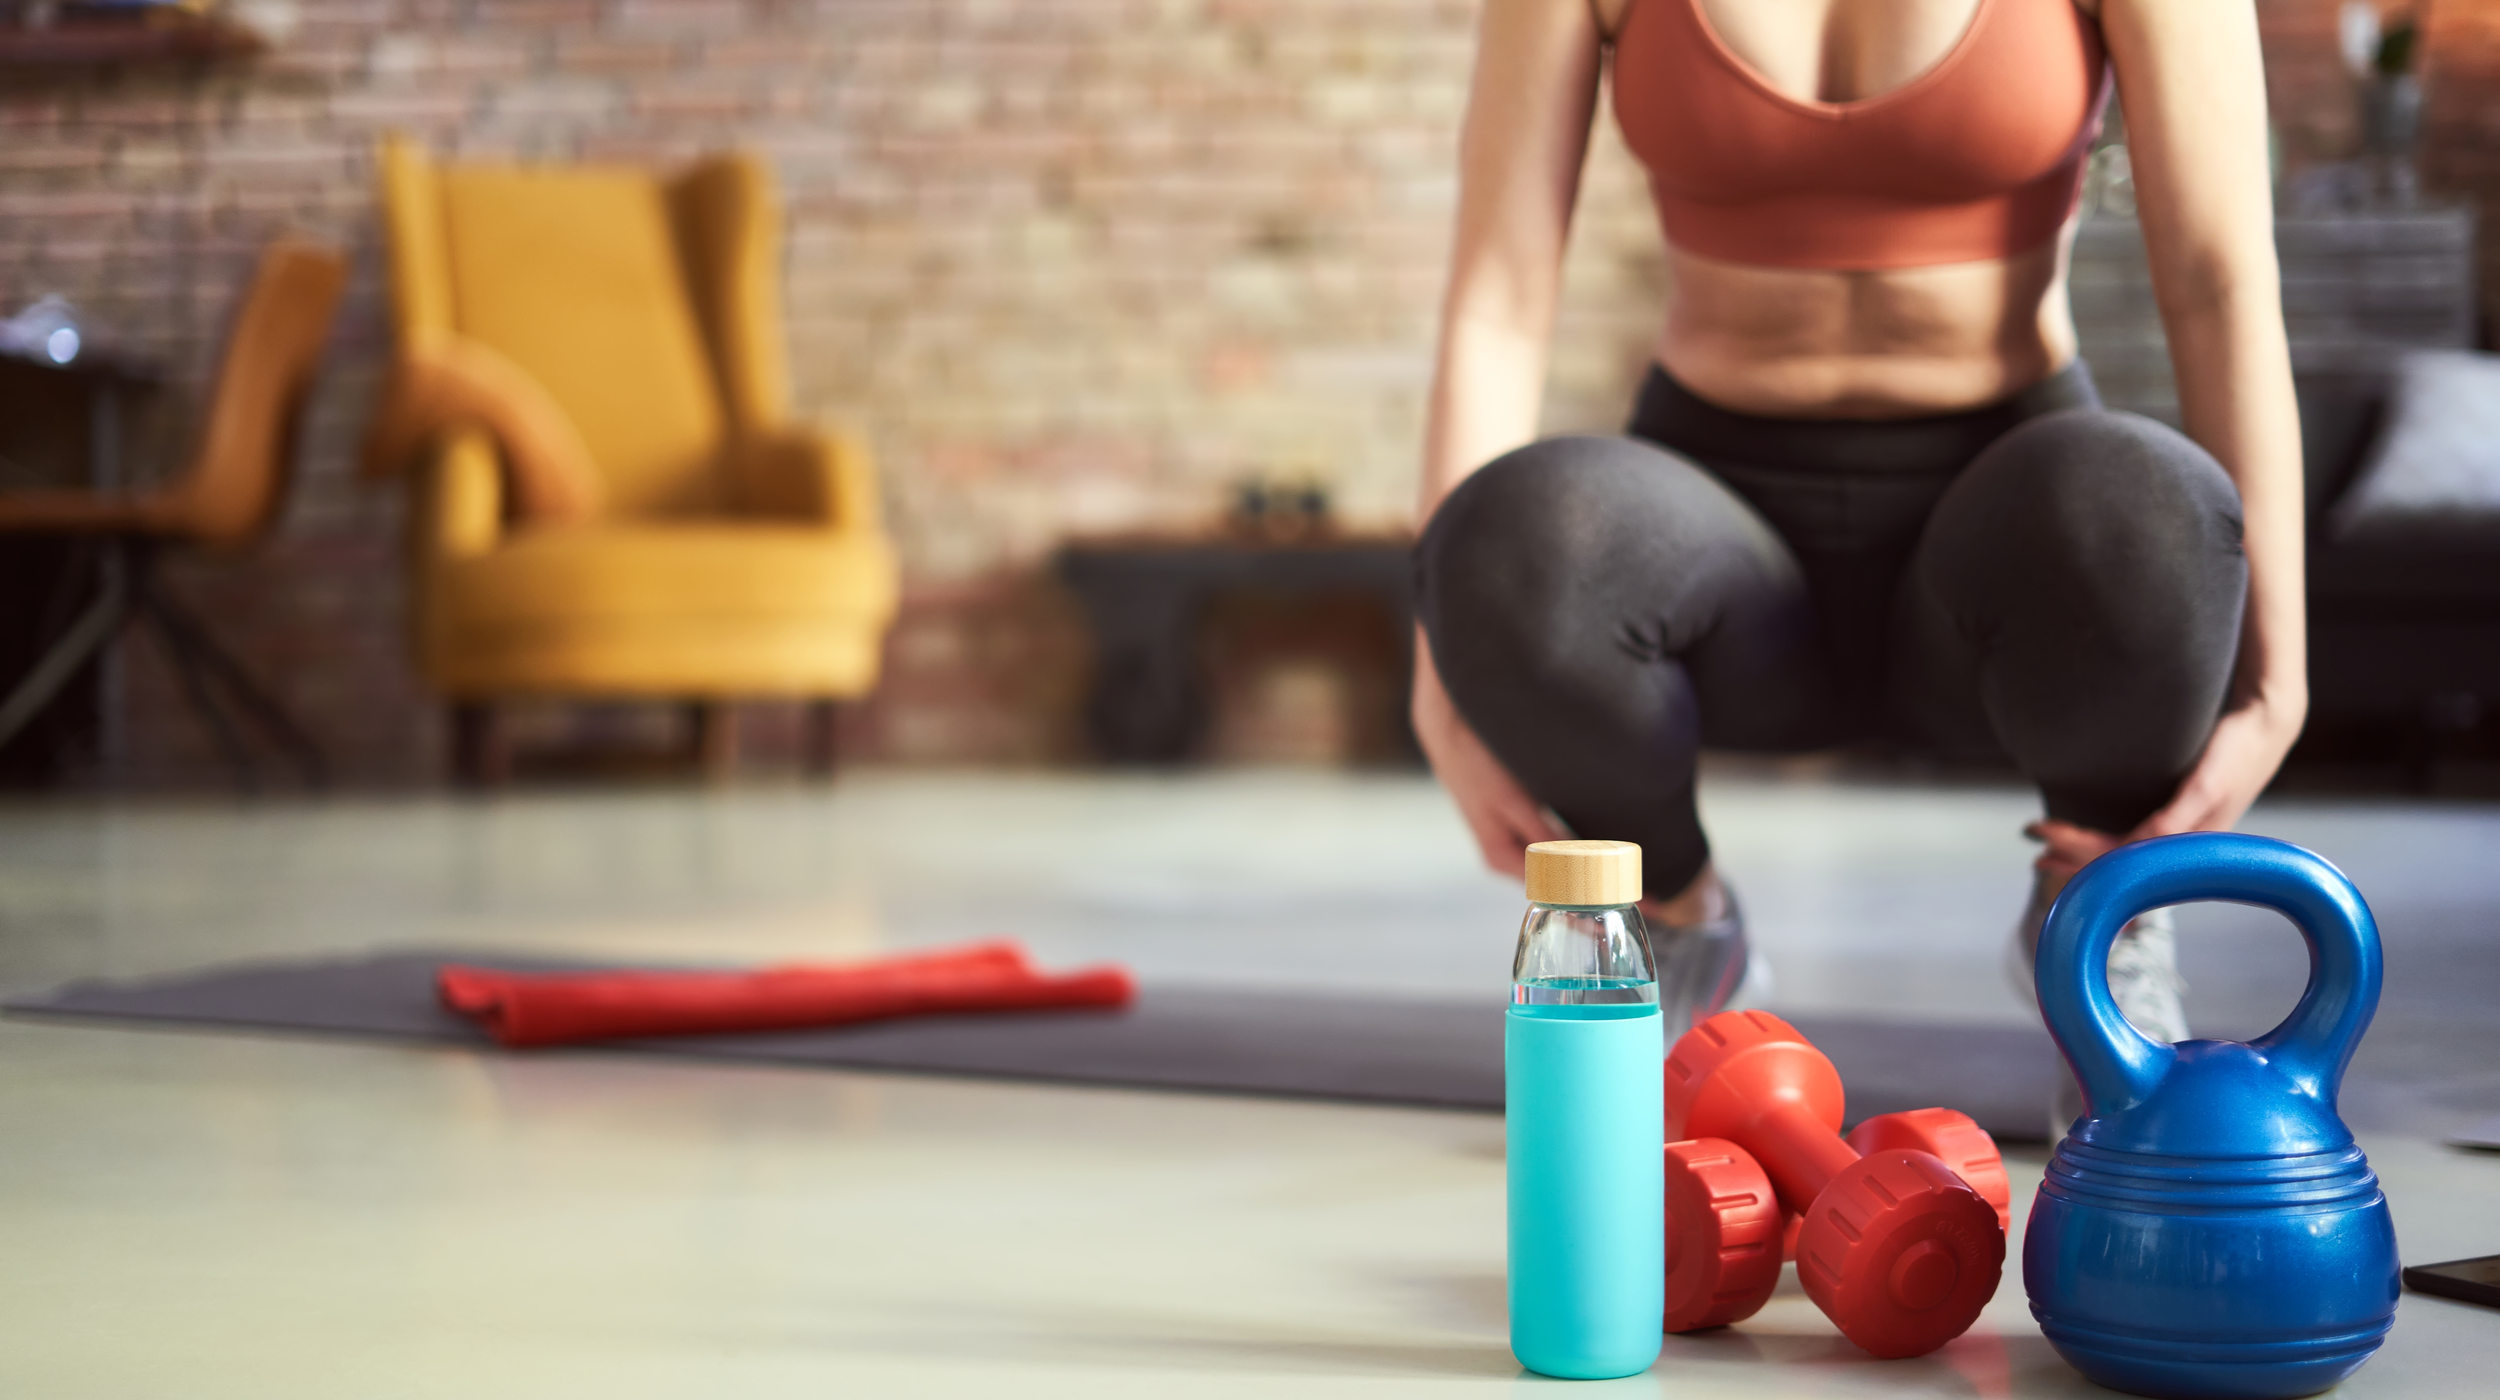 Strength Training at Home – How to Get Started